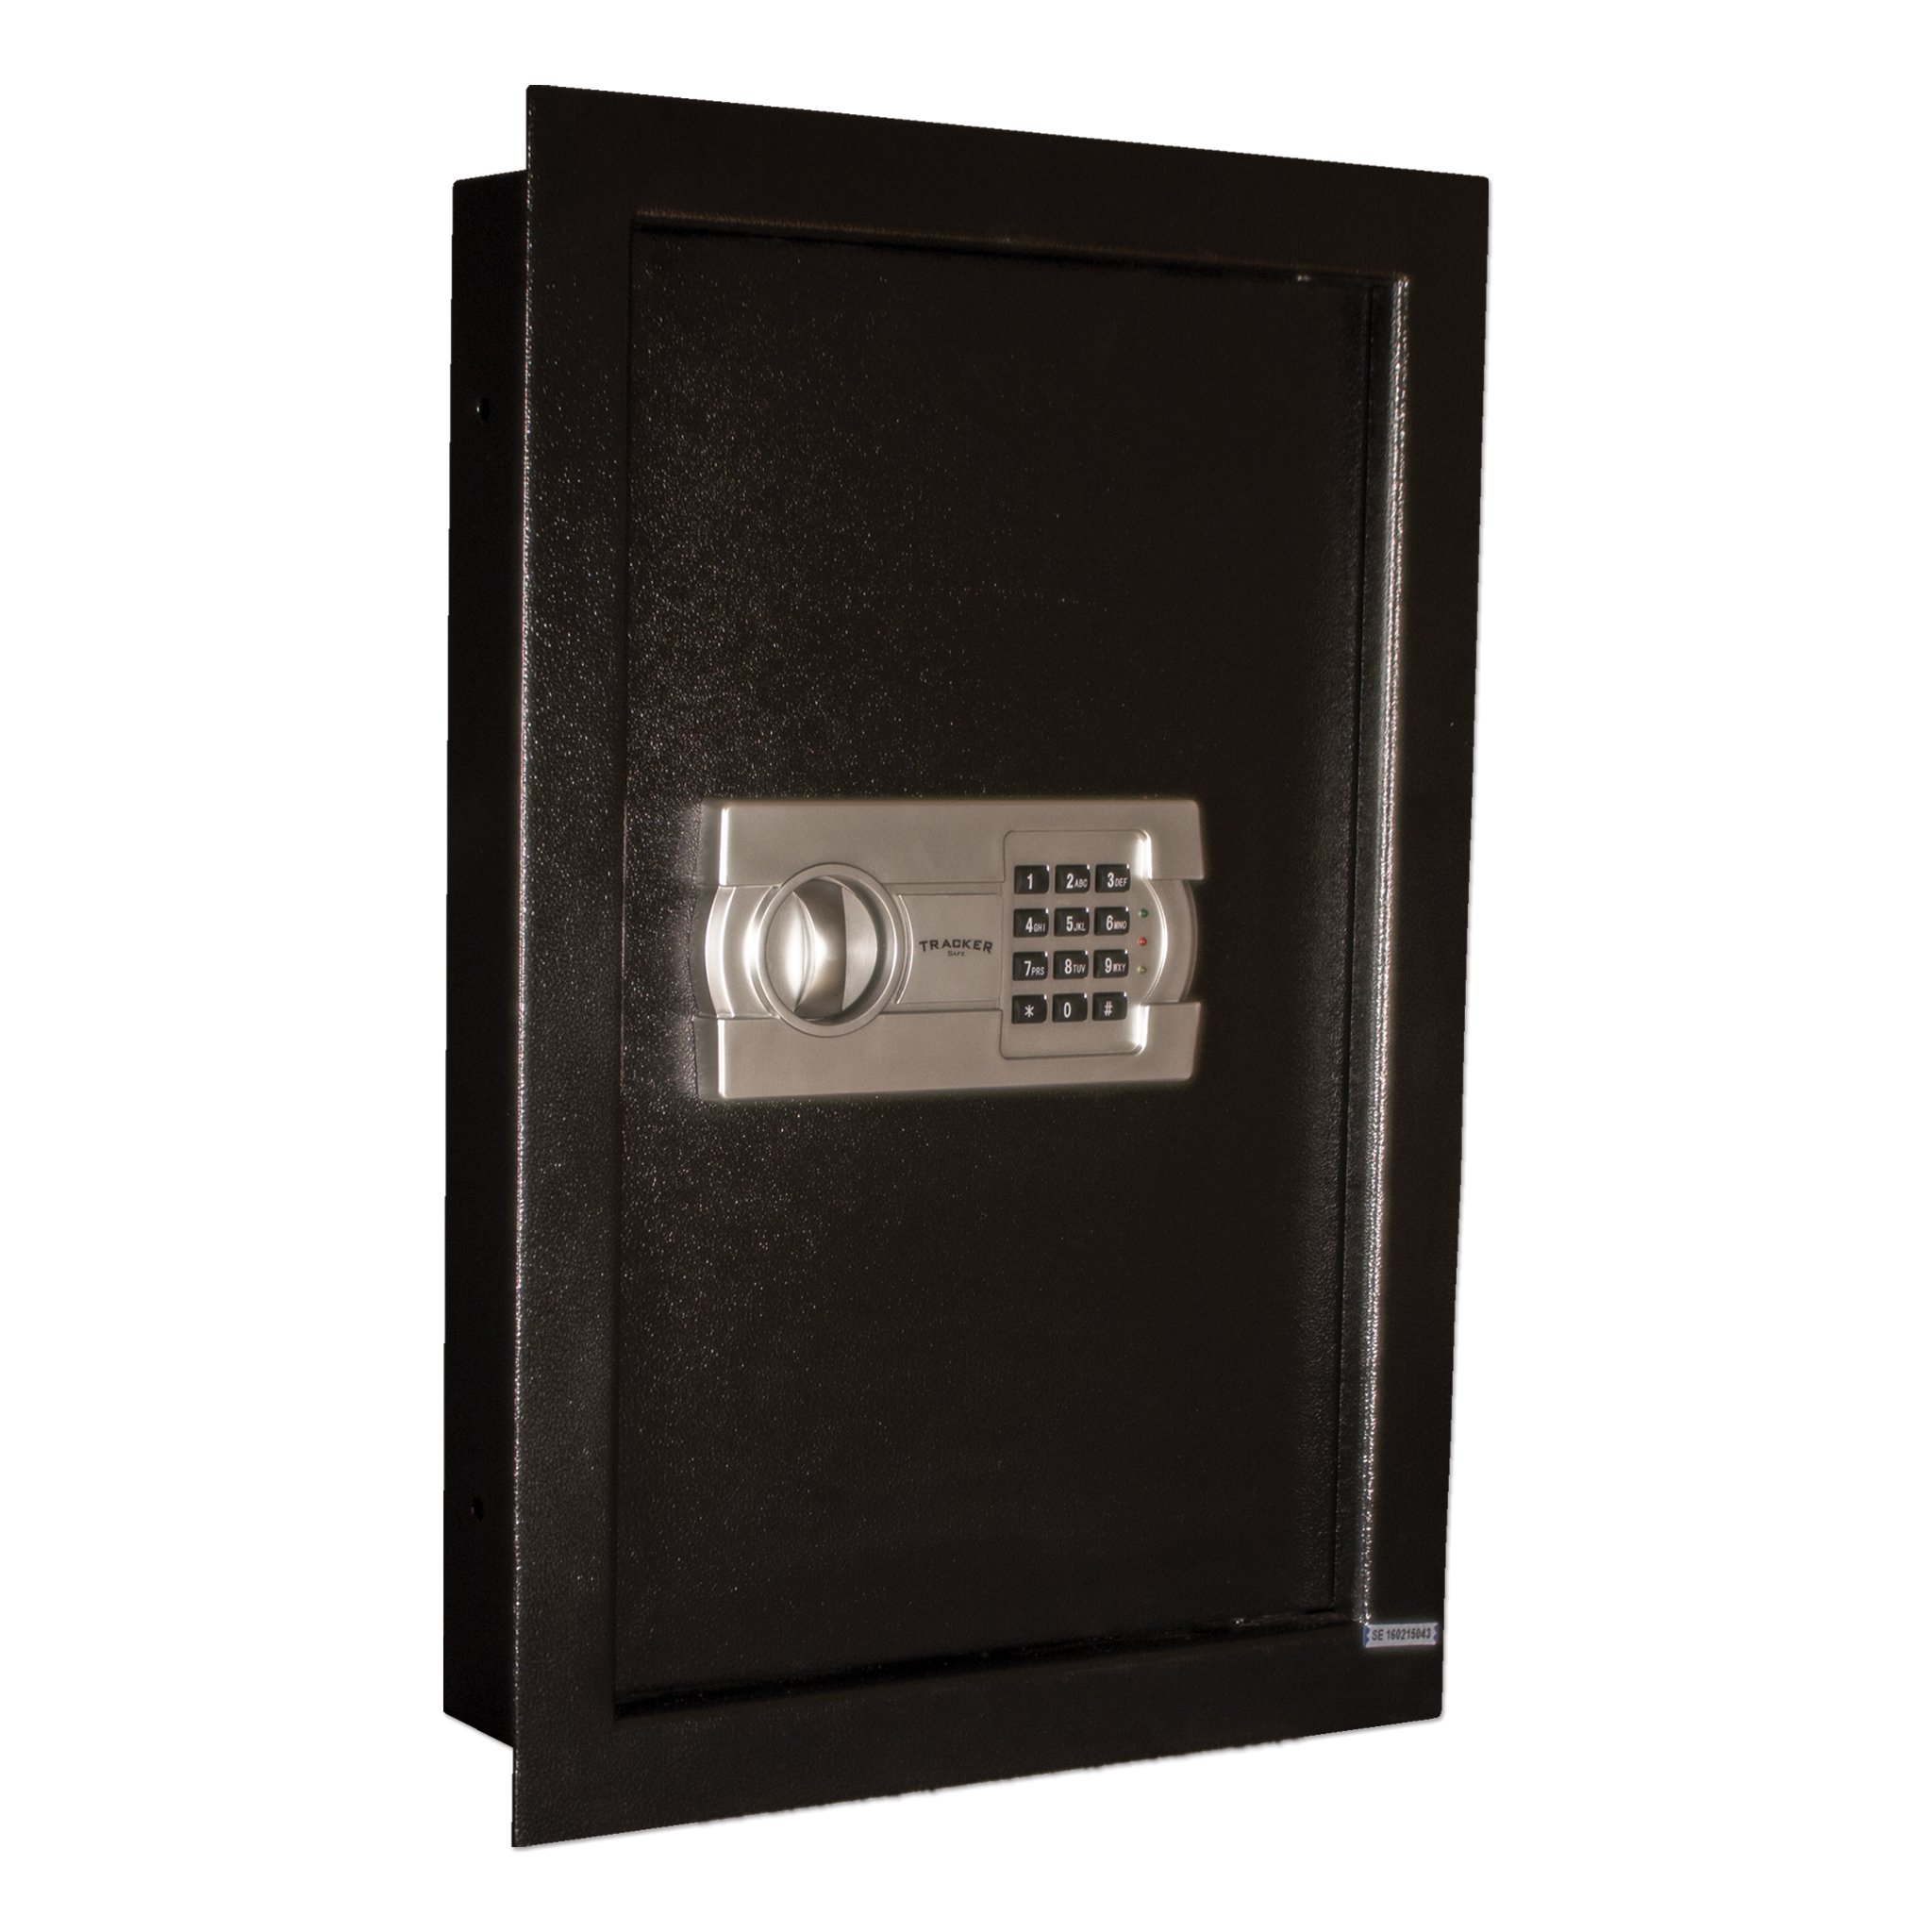 Tracker Safe WS211404-E Steel Wall Safe, Electronic Lock, Black Powder Coat Paint, 0.60 cu. ft. by Tracker Safe